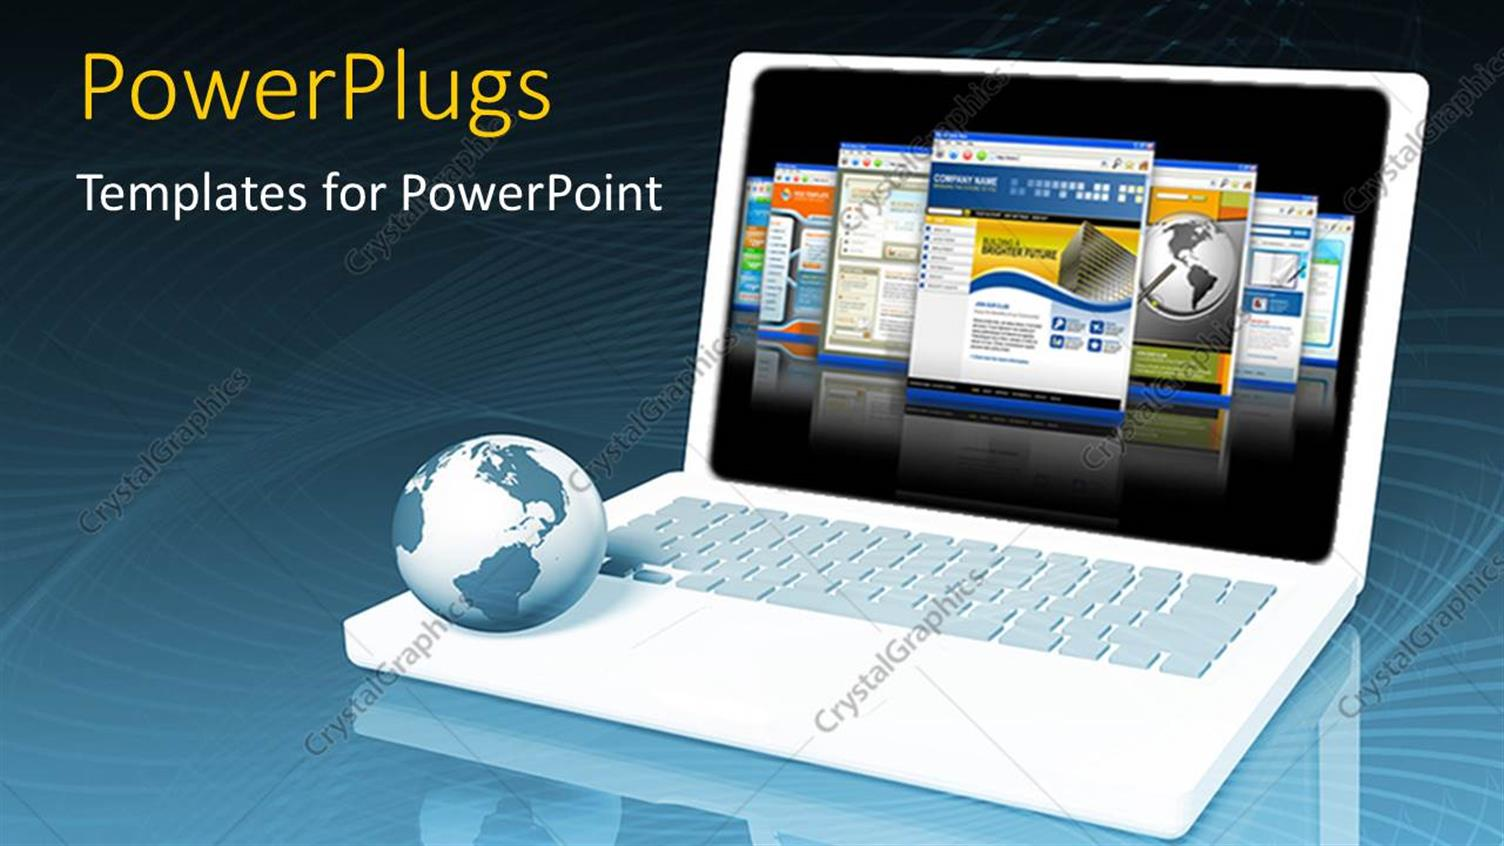 PowerPoint Template Displaying a Laptop with a Globe and Bluish Background